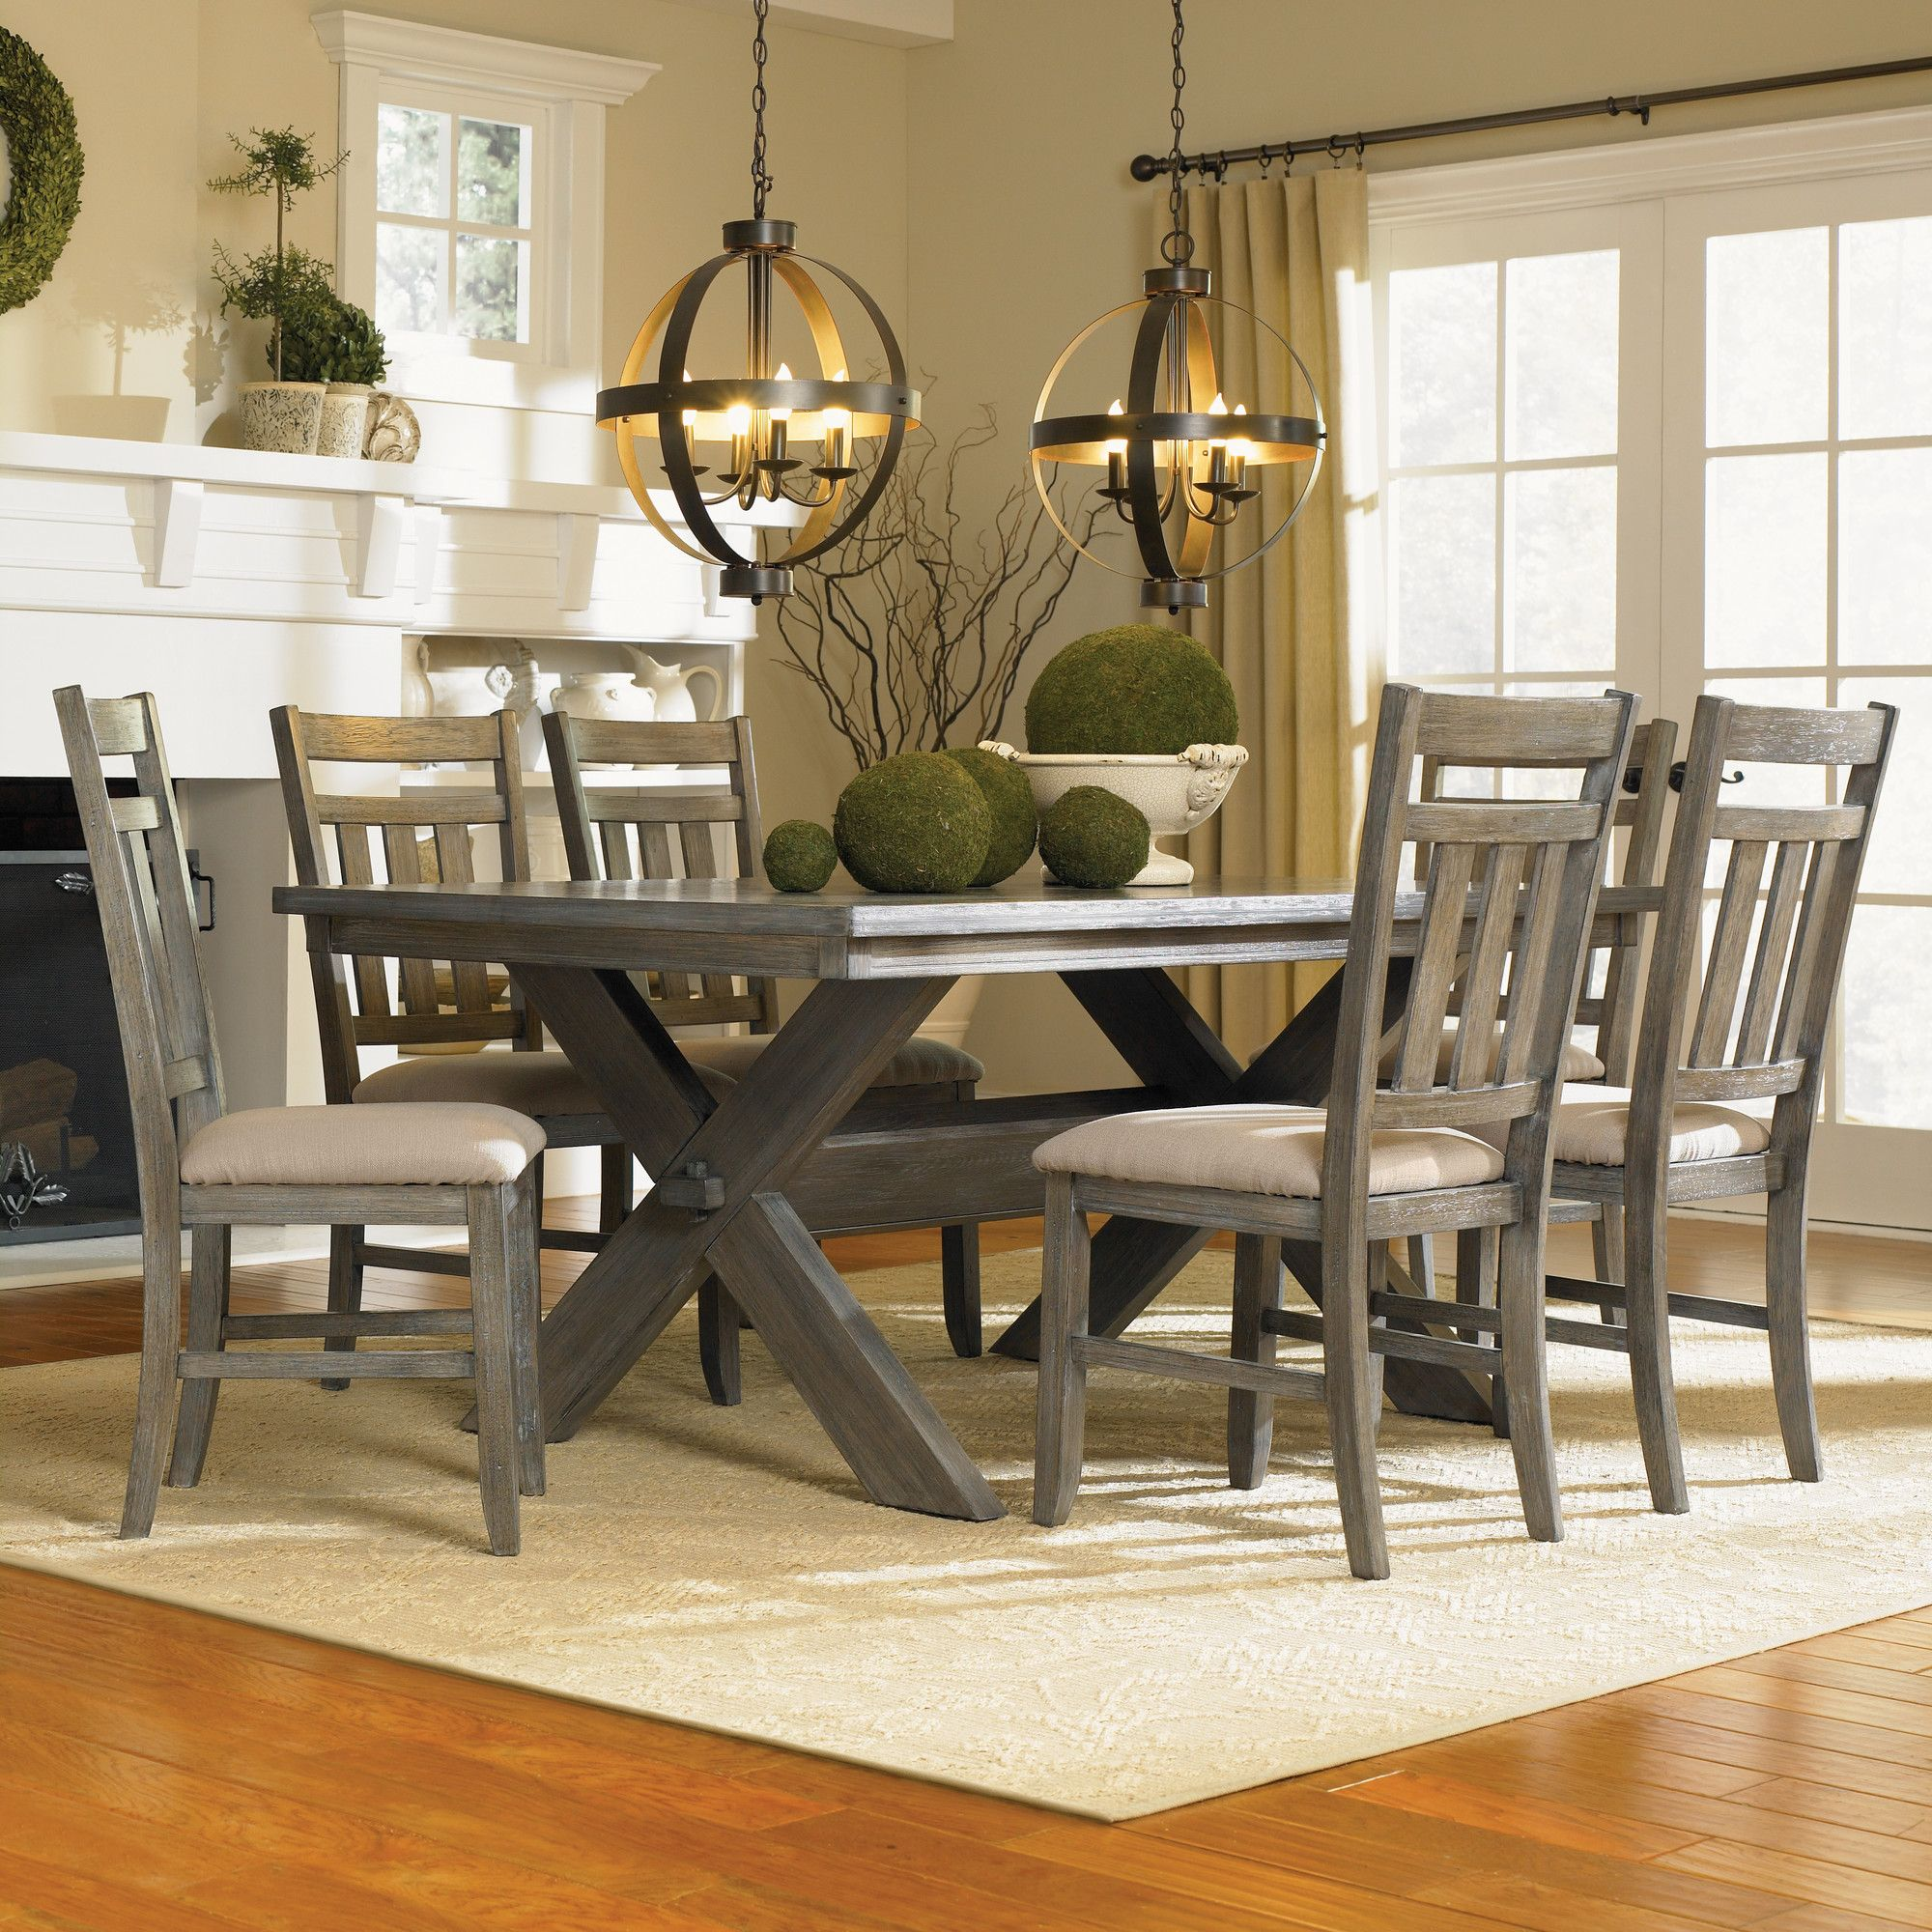 Powell Turino 5 Piece Dining Set Reviews Wayfair Dining Room Sets Rectangle Dining Table Distressed Dining Table